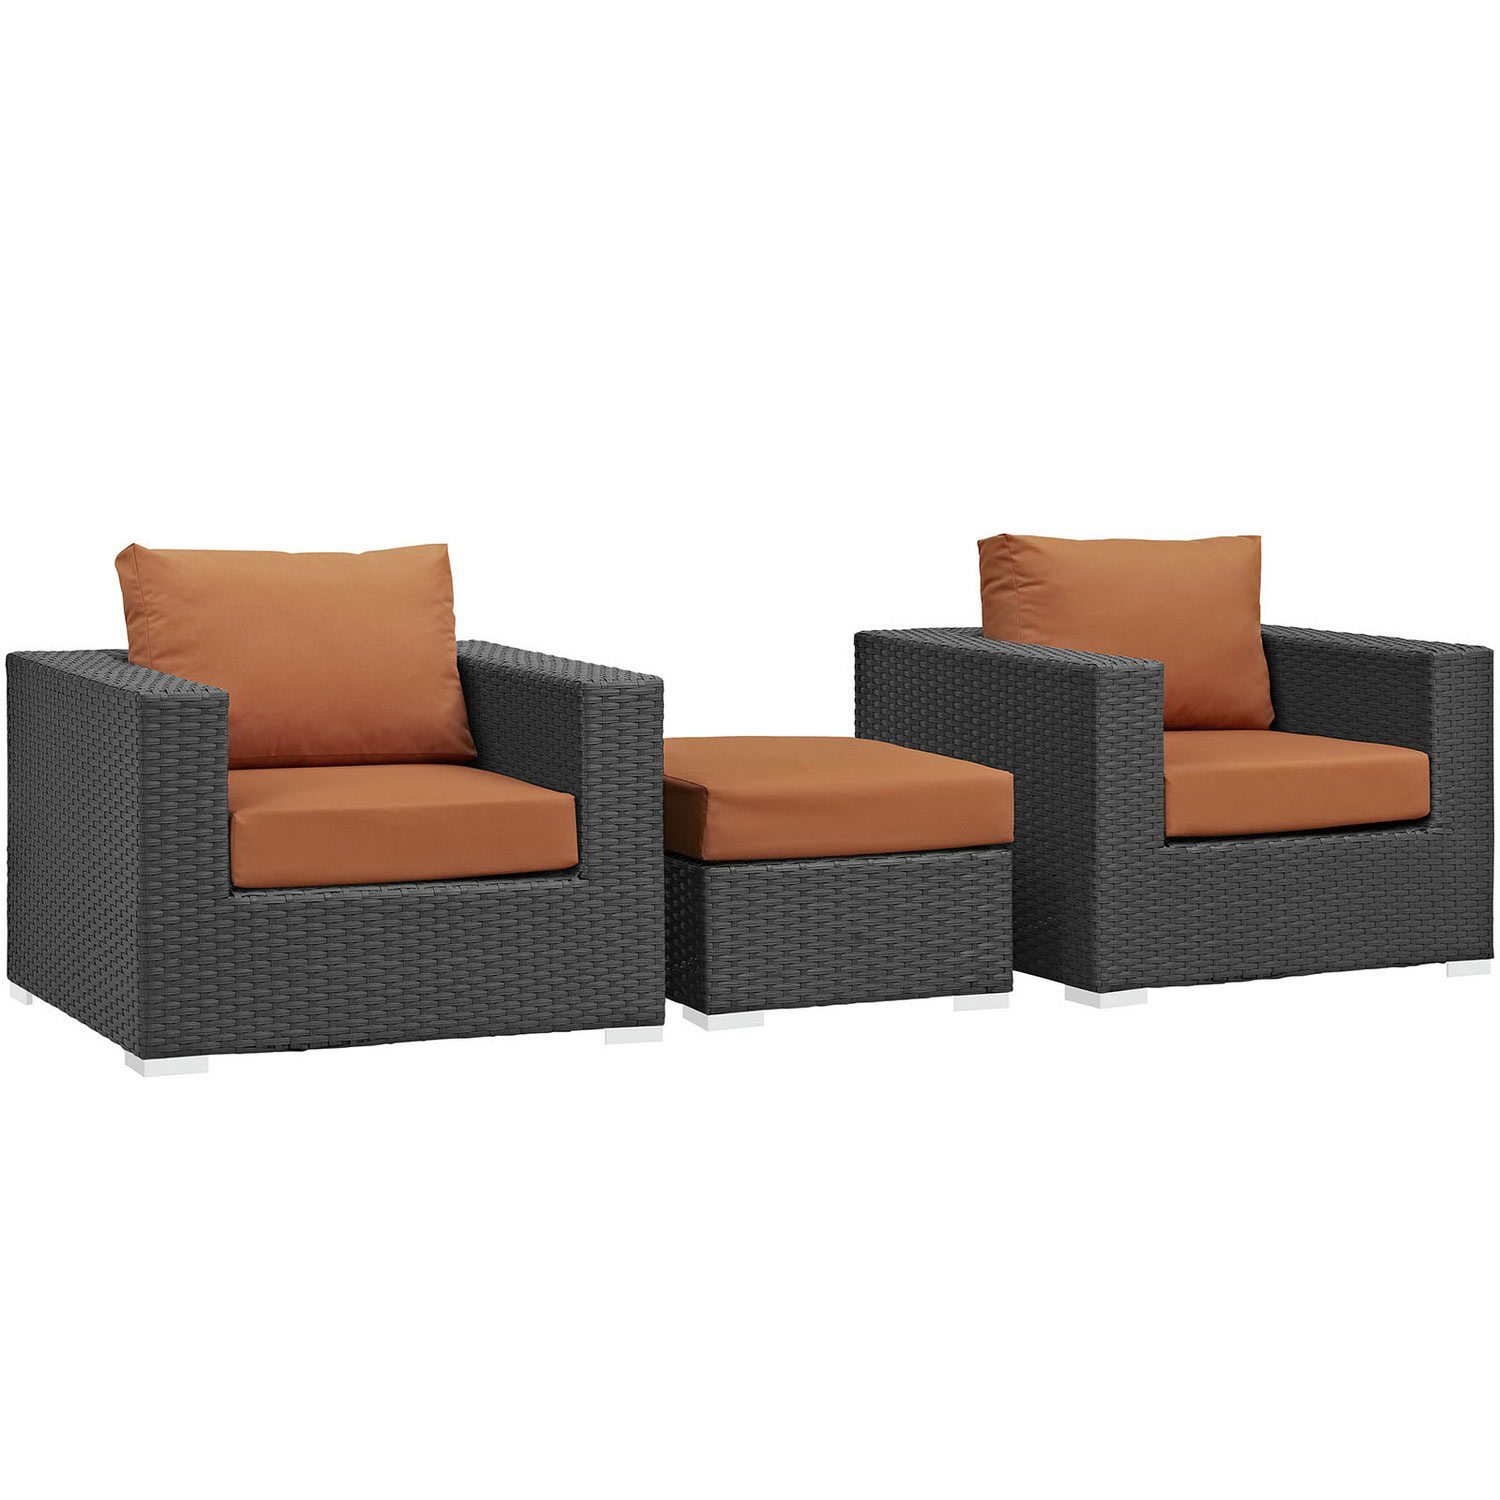 Modway Sojourn 3 Piece Outdoor Patio Sunbrella Sectional Set - Canvas Tuscan